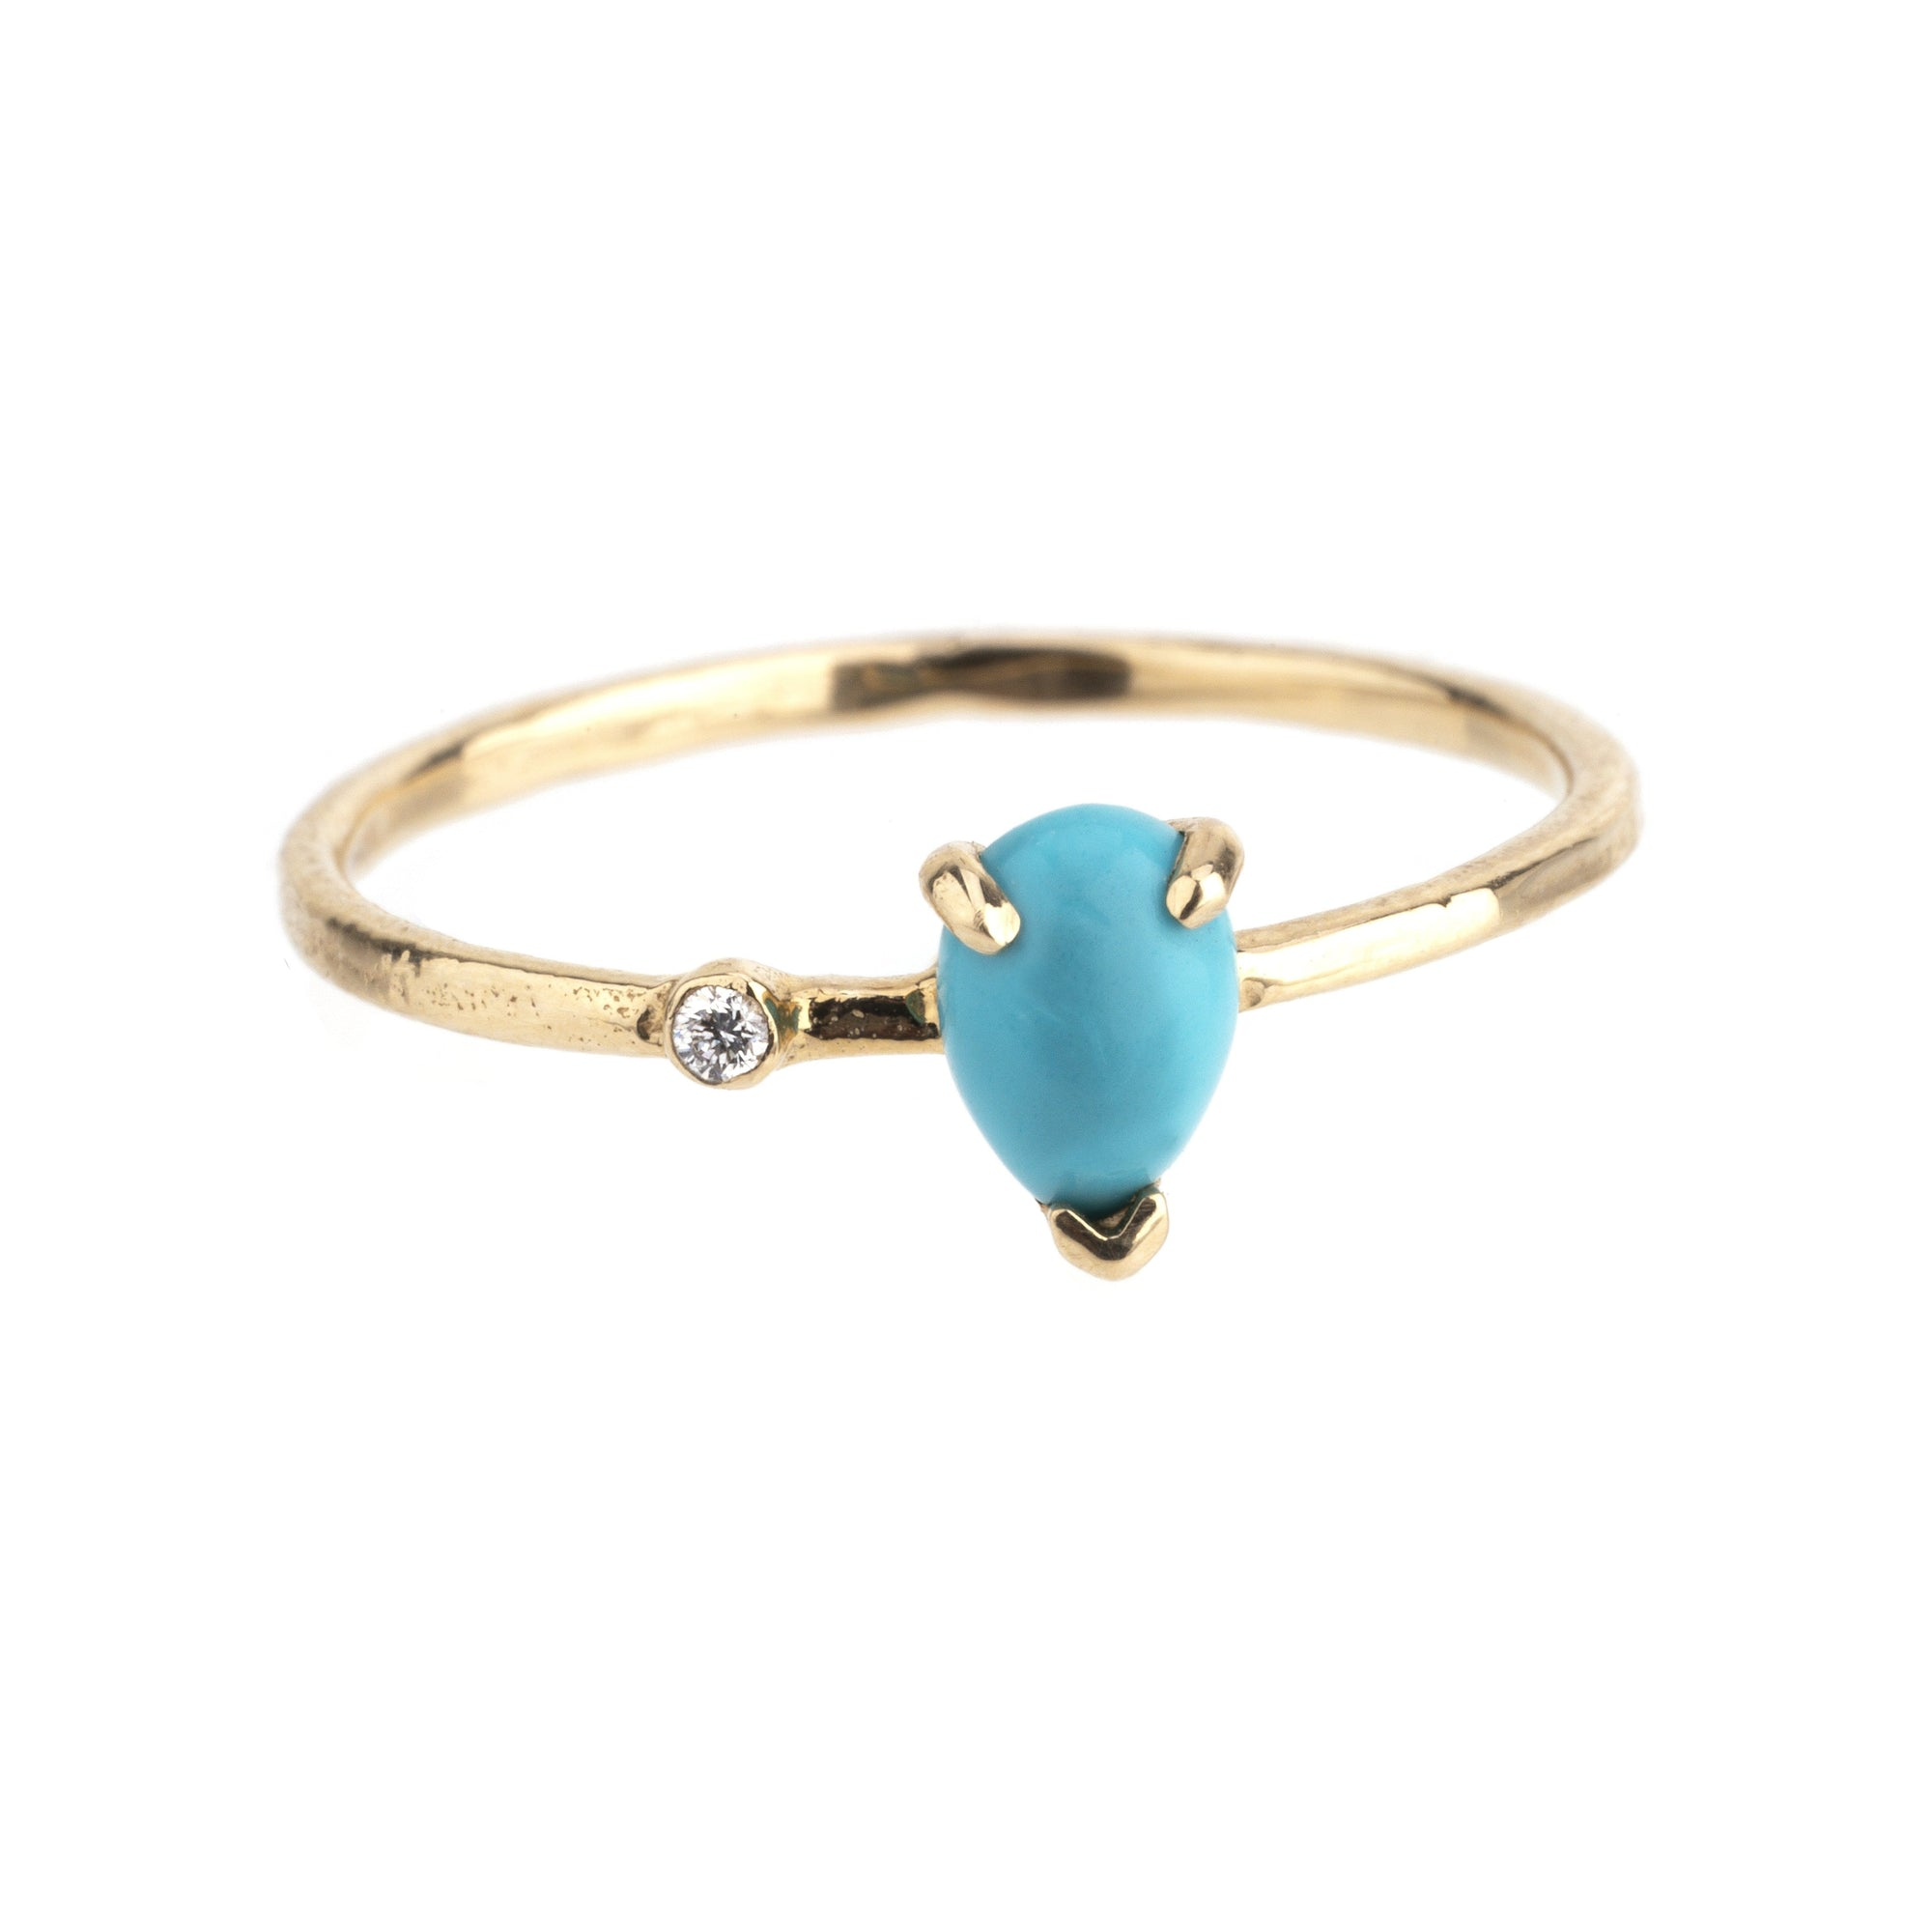 Wink Ring: Sleeping Beauty Turquoise